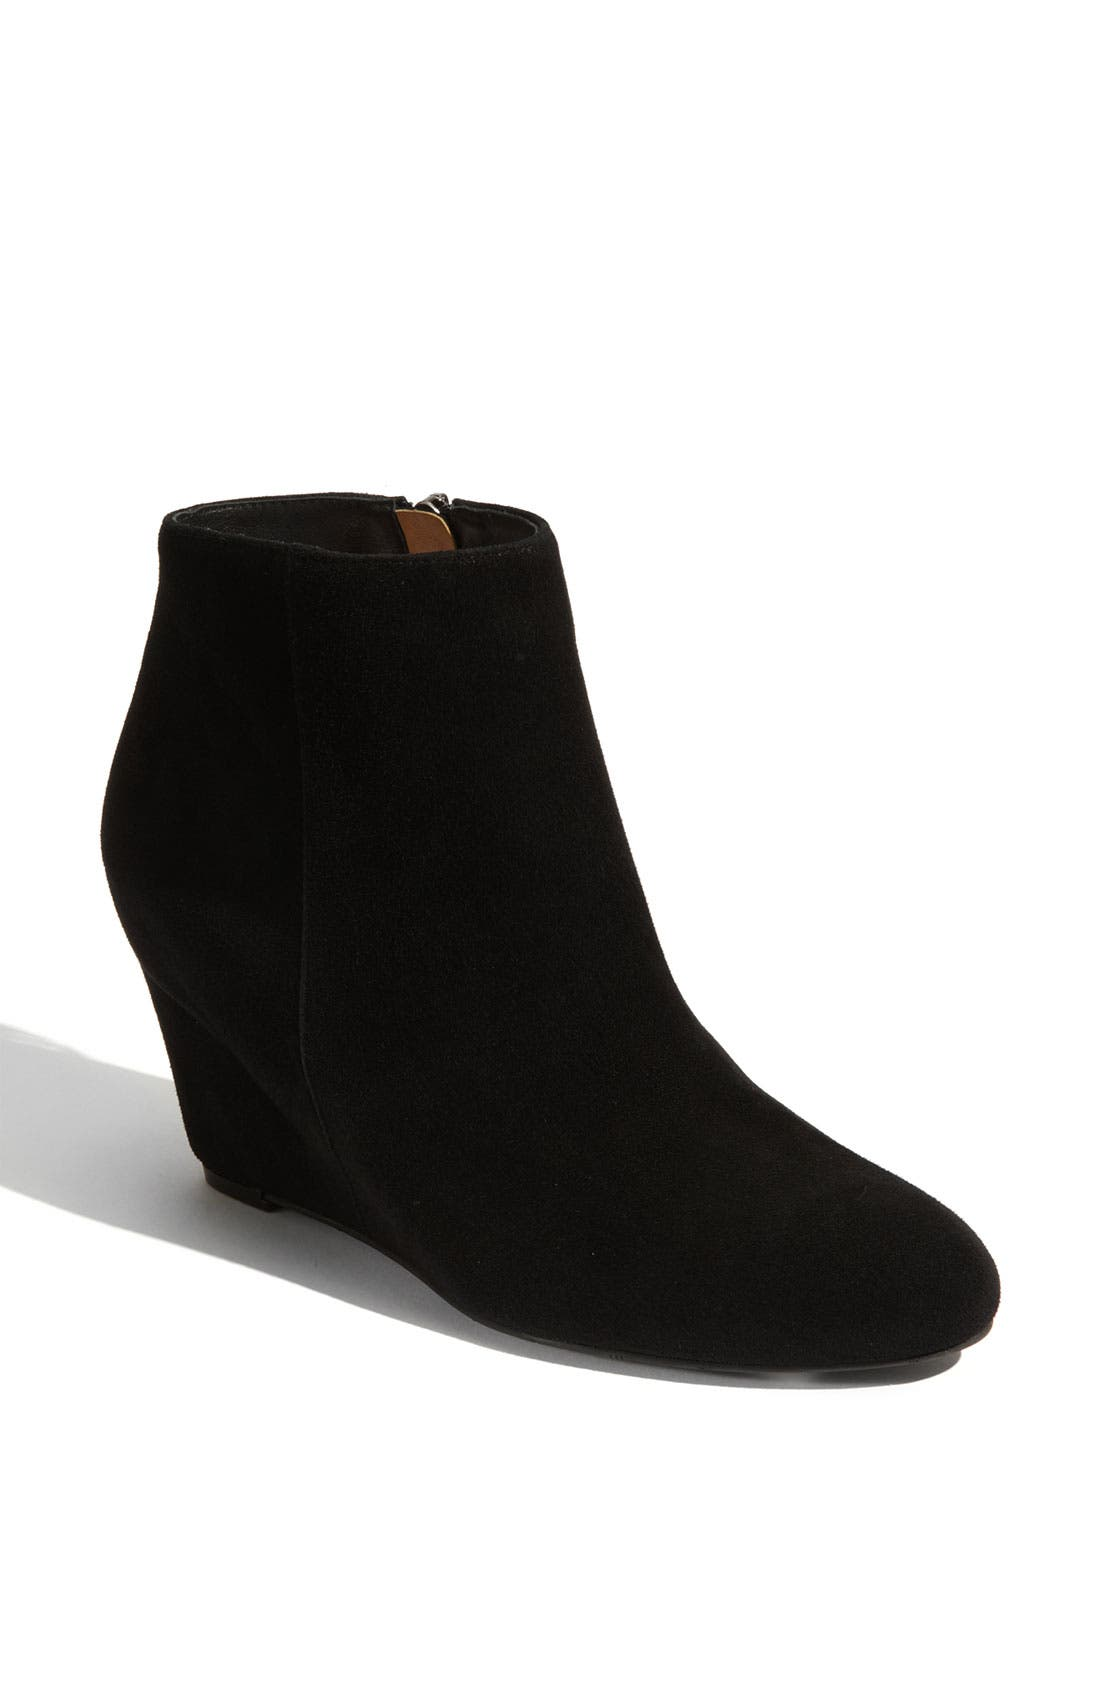 Main Image - Via Spiga 'Harrison' Wedge Bootie